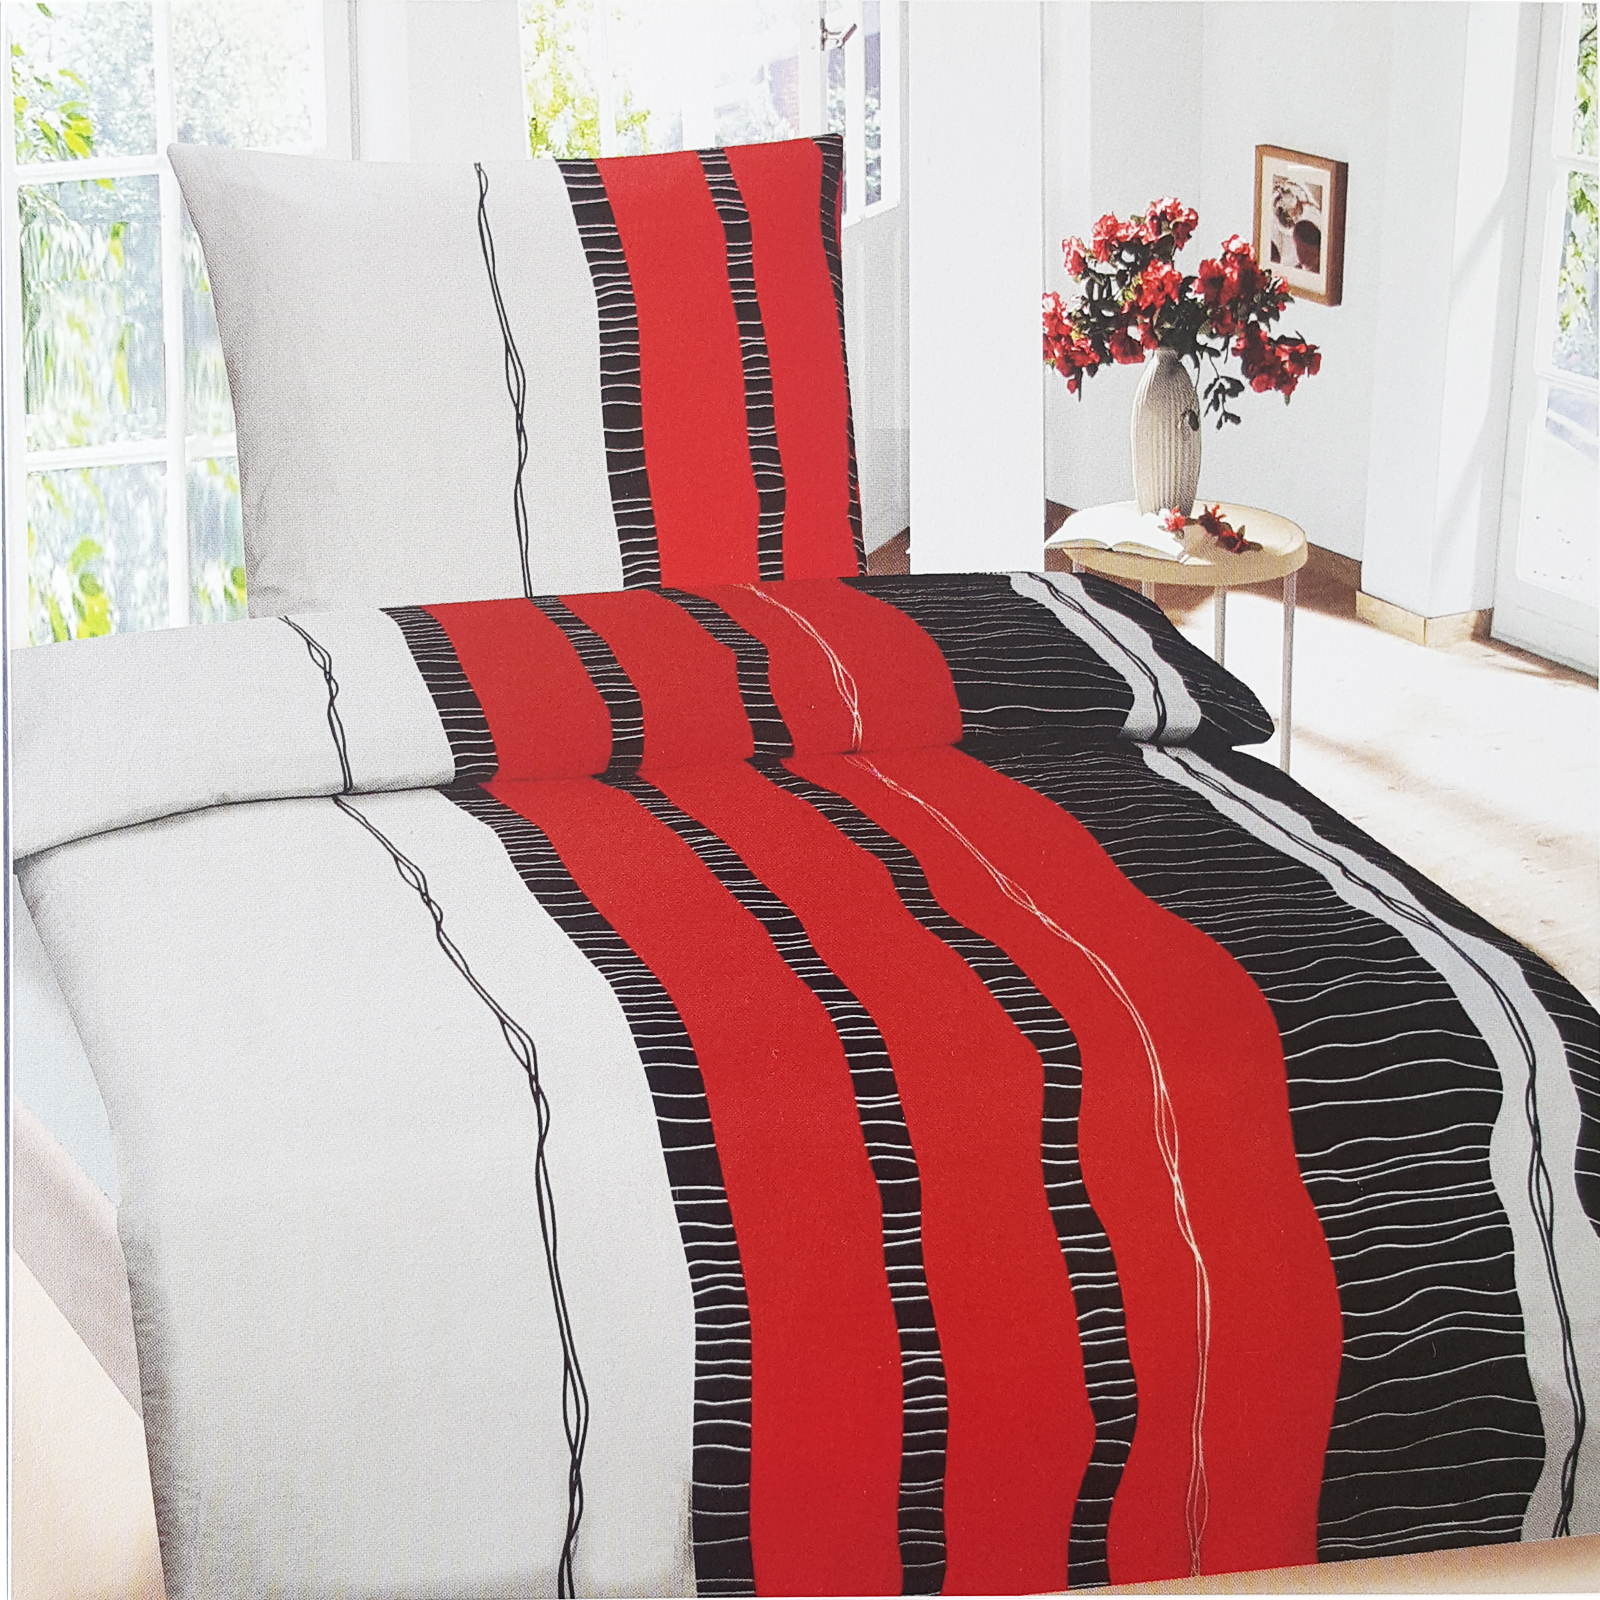 bettw sche garnitur bettbezug microfaser 135x200 155x220 200x200 red stripe ebay. Black Bedroom Furniture Sets. Home Design Ideas